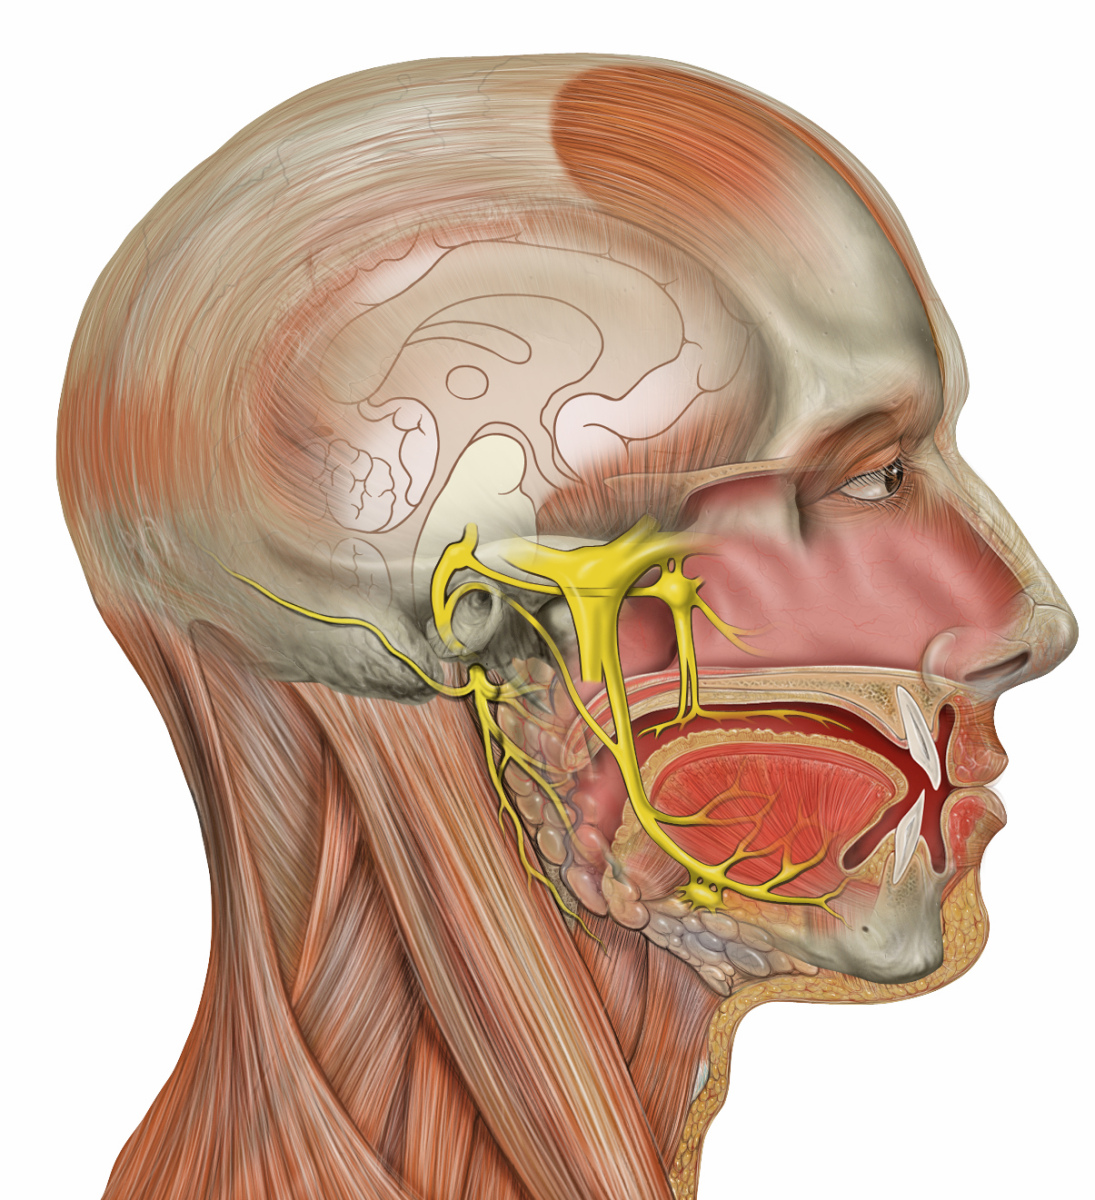 The trigeminal nerve (in yellow) is the source of 'brain-freeze.' this heavily branched nerve misreads signals around the palate when you eat icecream, interpreting them as pain.